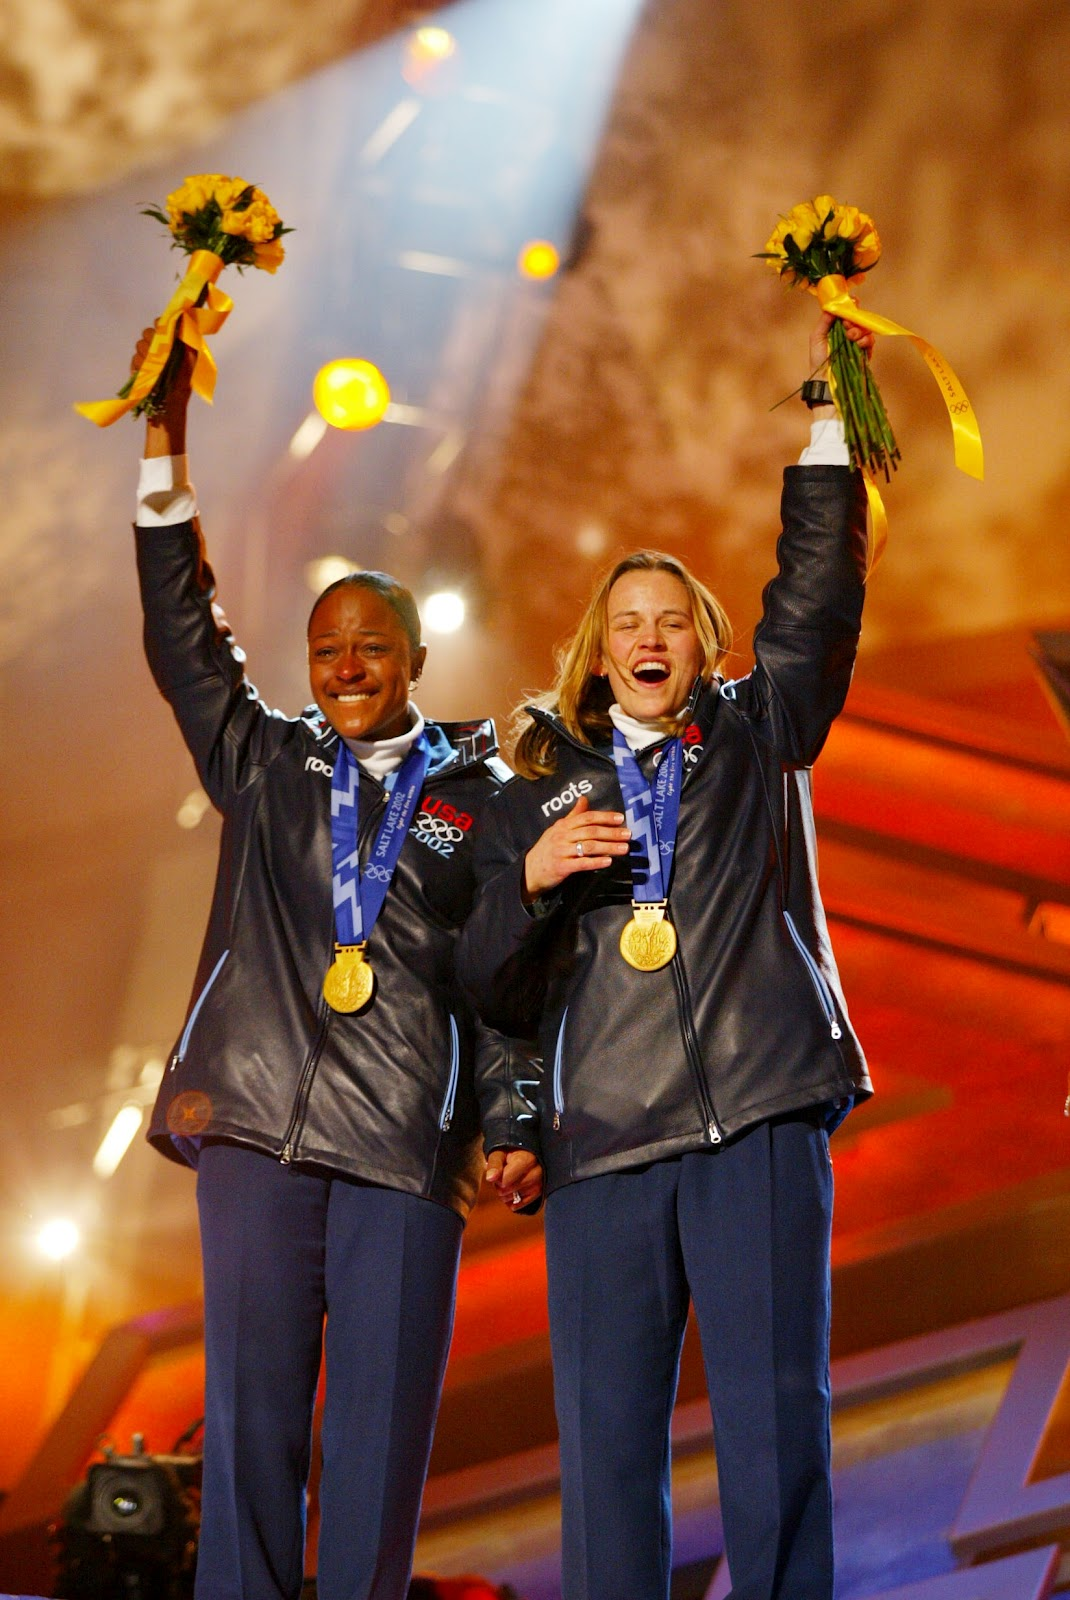 Discussion on this topic: Amy Lemons, vonetta-flowers-olympic-medal-in-bobsleigh/